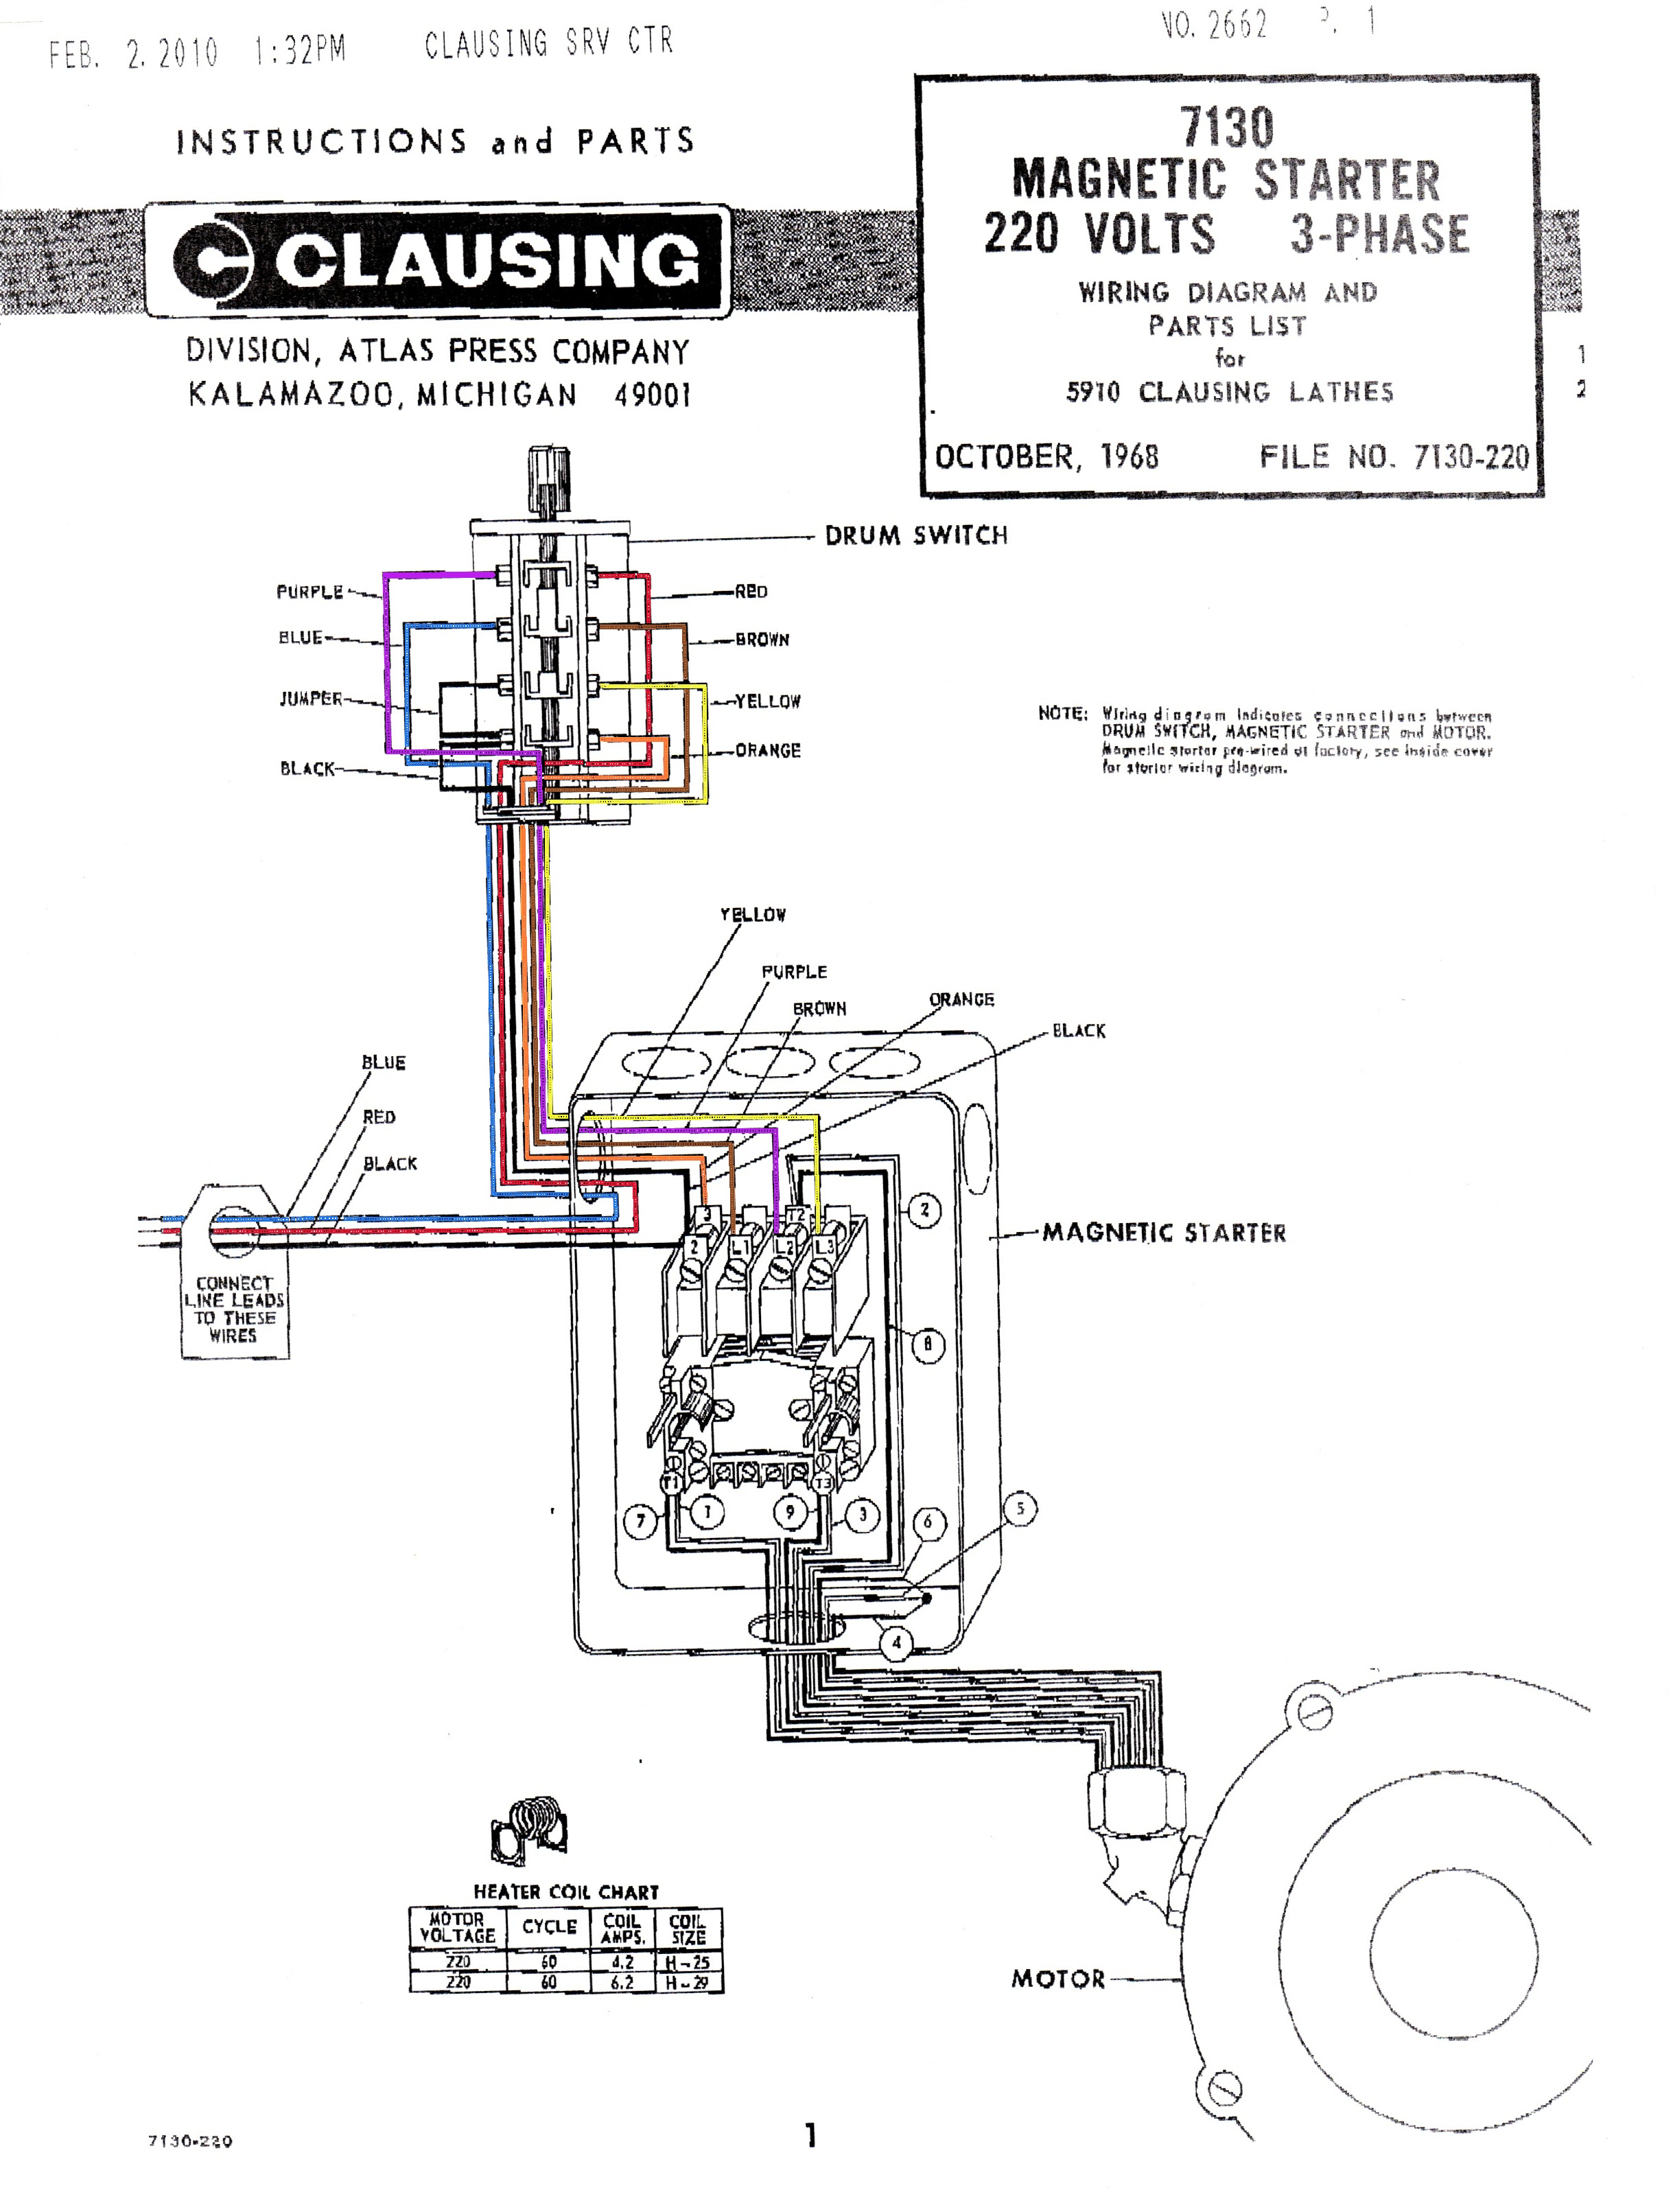 7130 Magnetic Starter Wiring Diagram Color starter wiring diagrams starter motor relay wiring diagram 3 phase magnetic starter wiring diagram at crackthecode.co